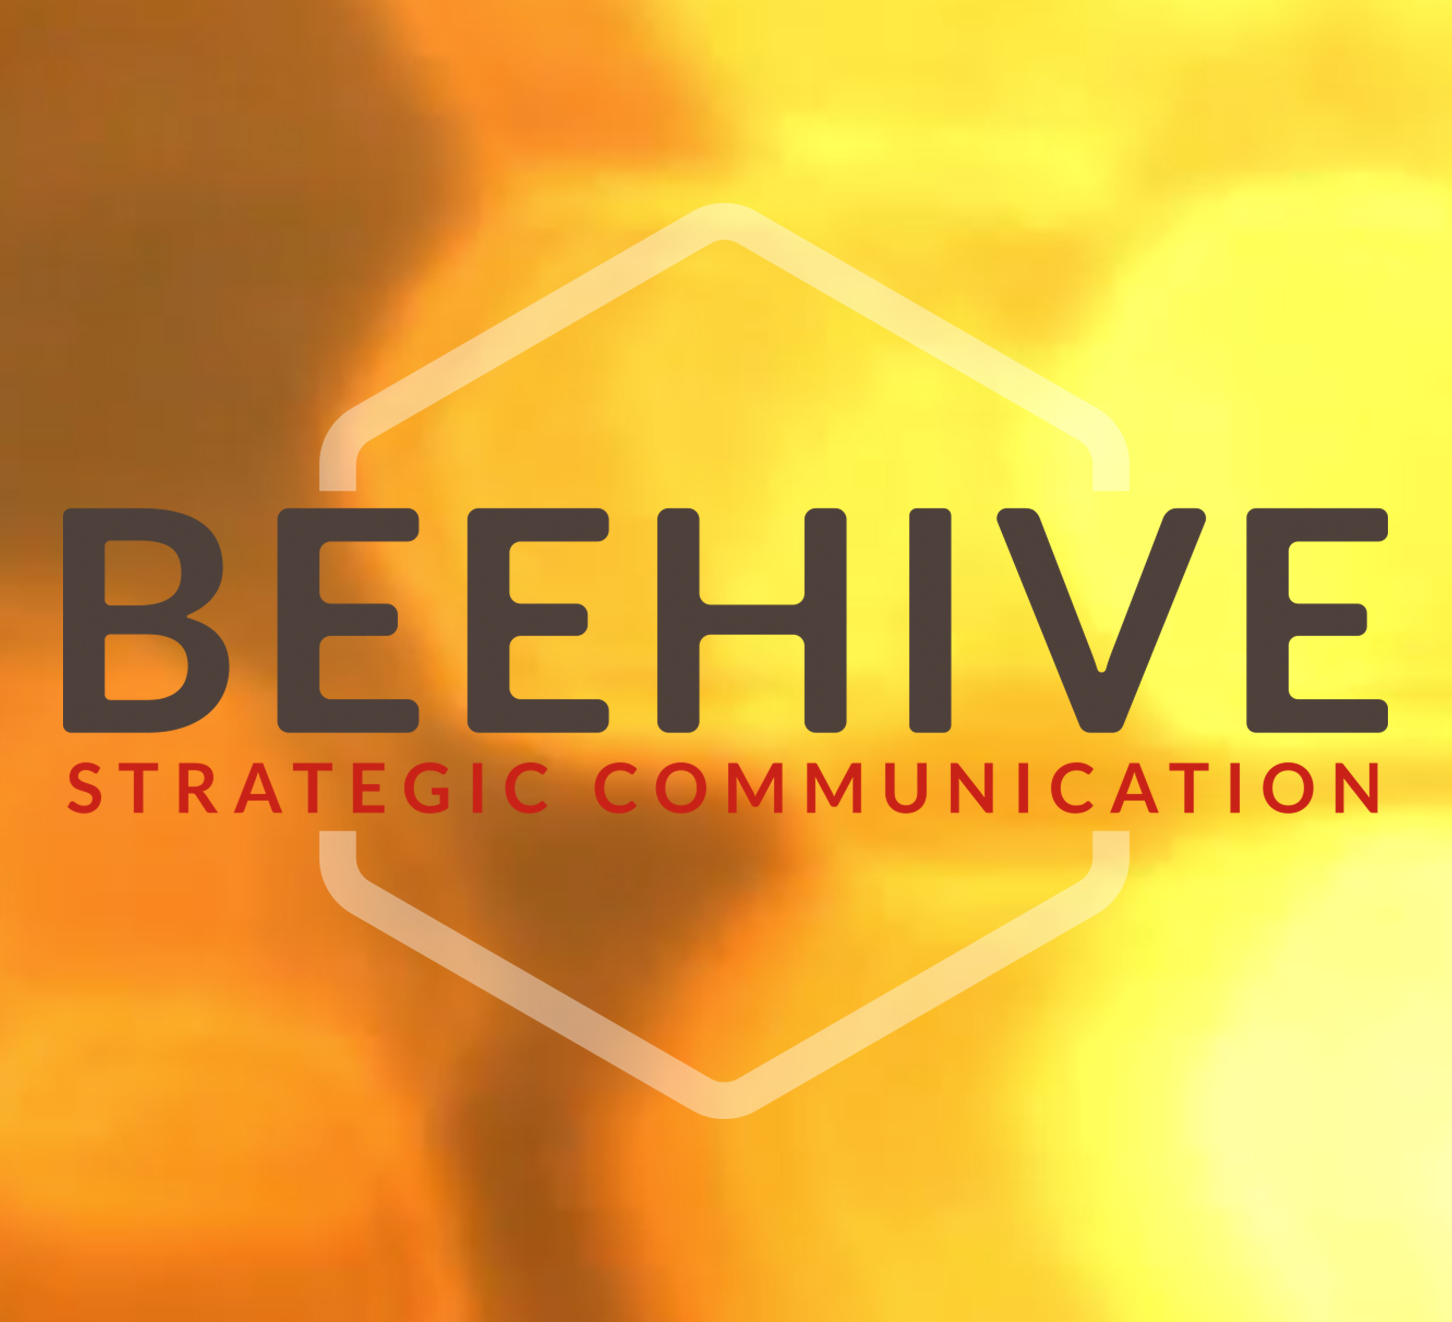 Beehive – International co-operation